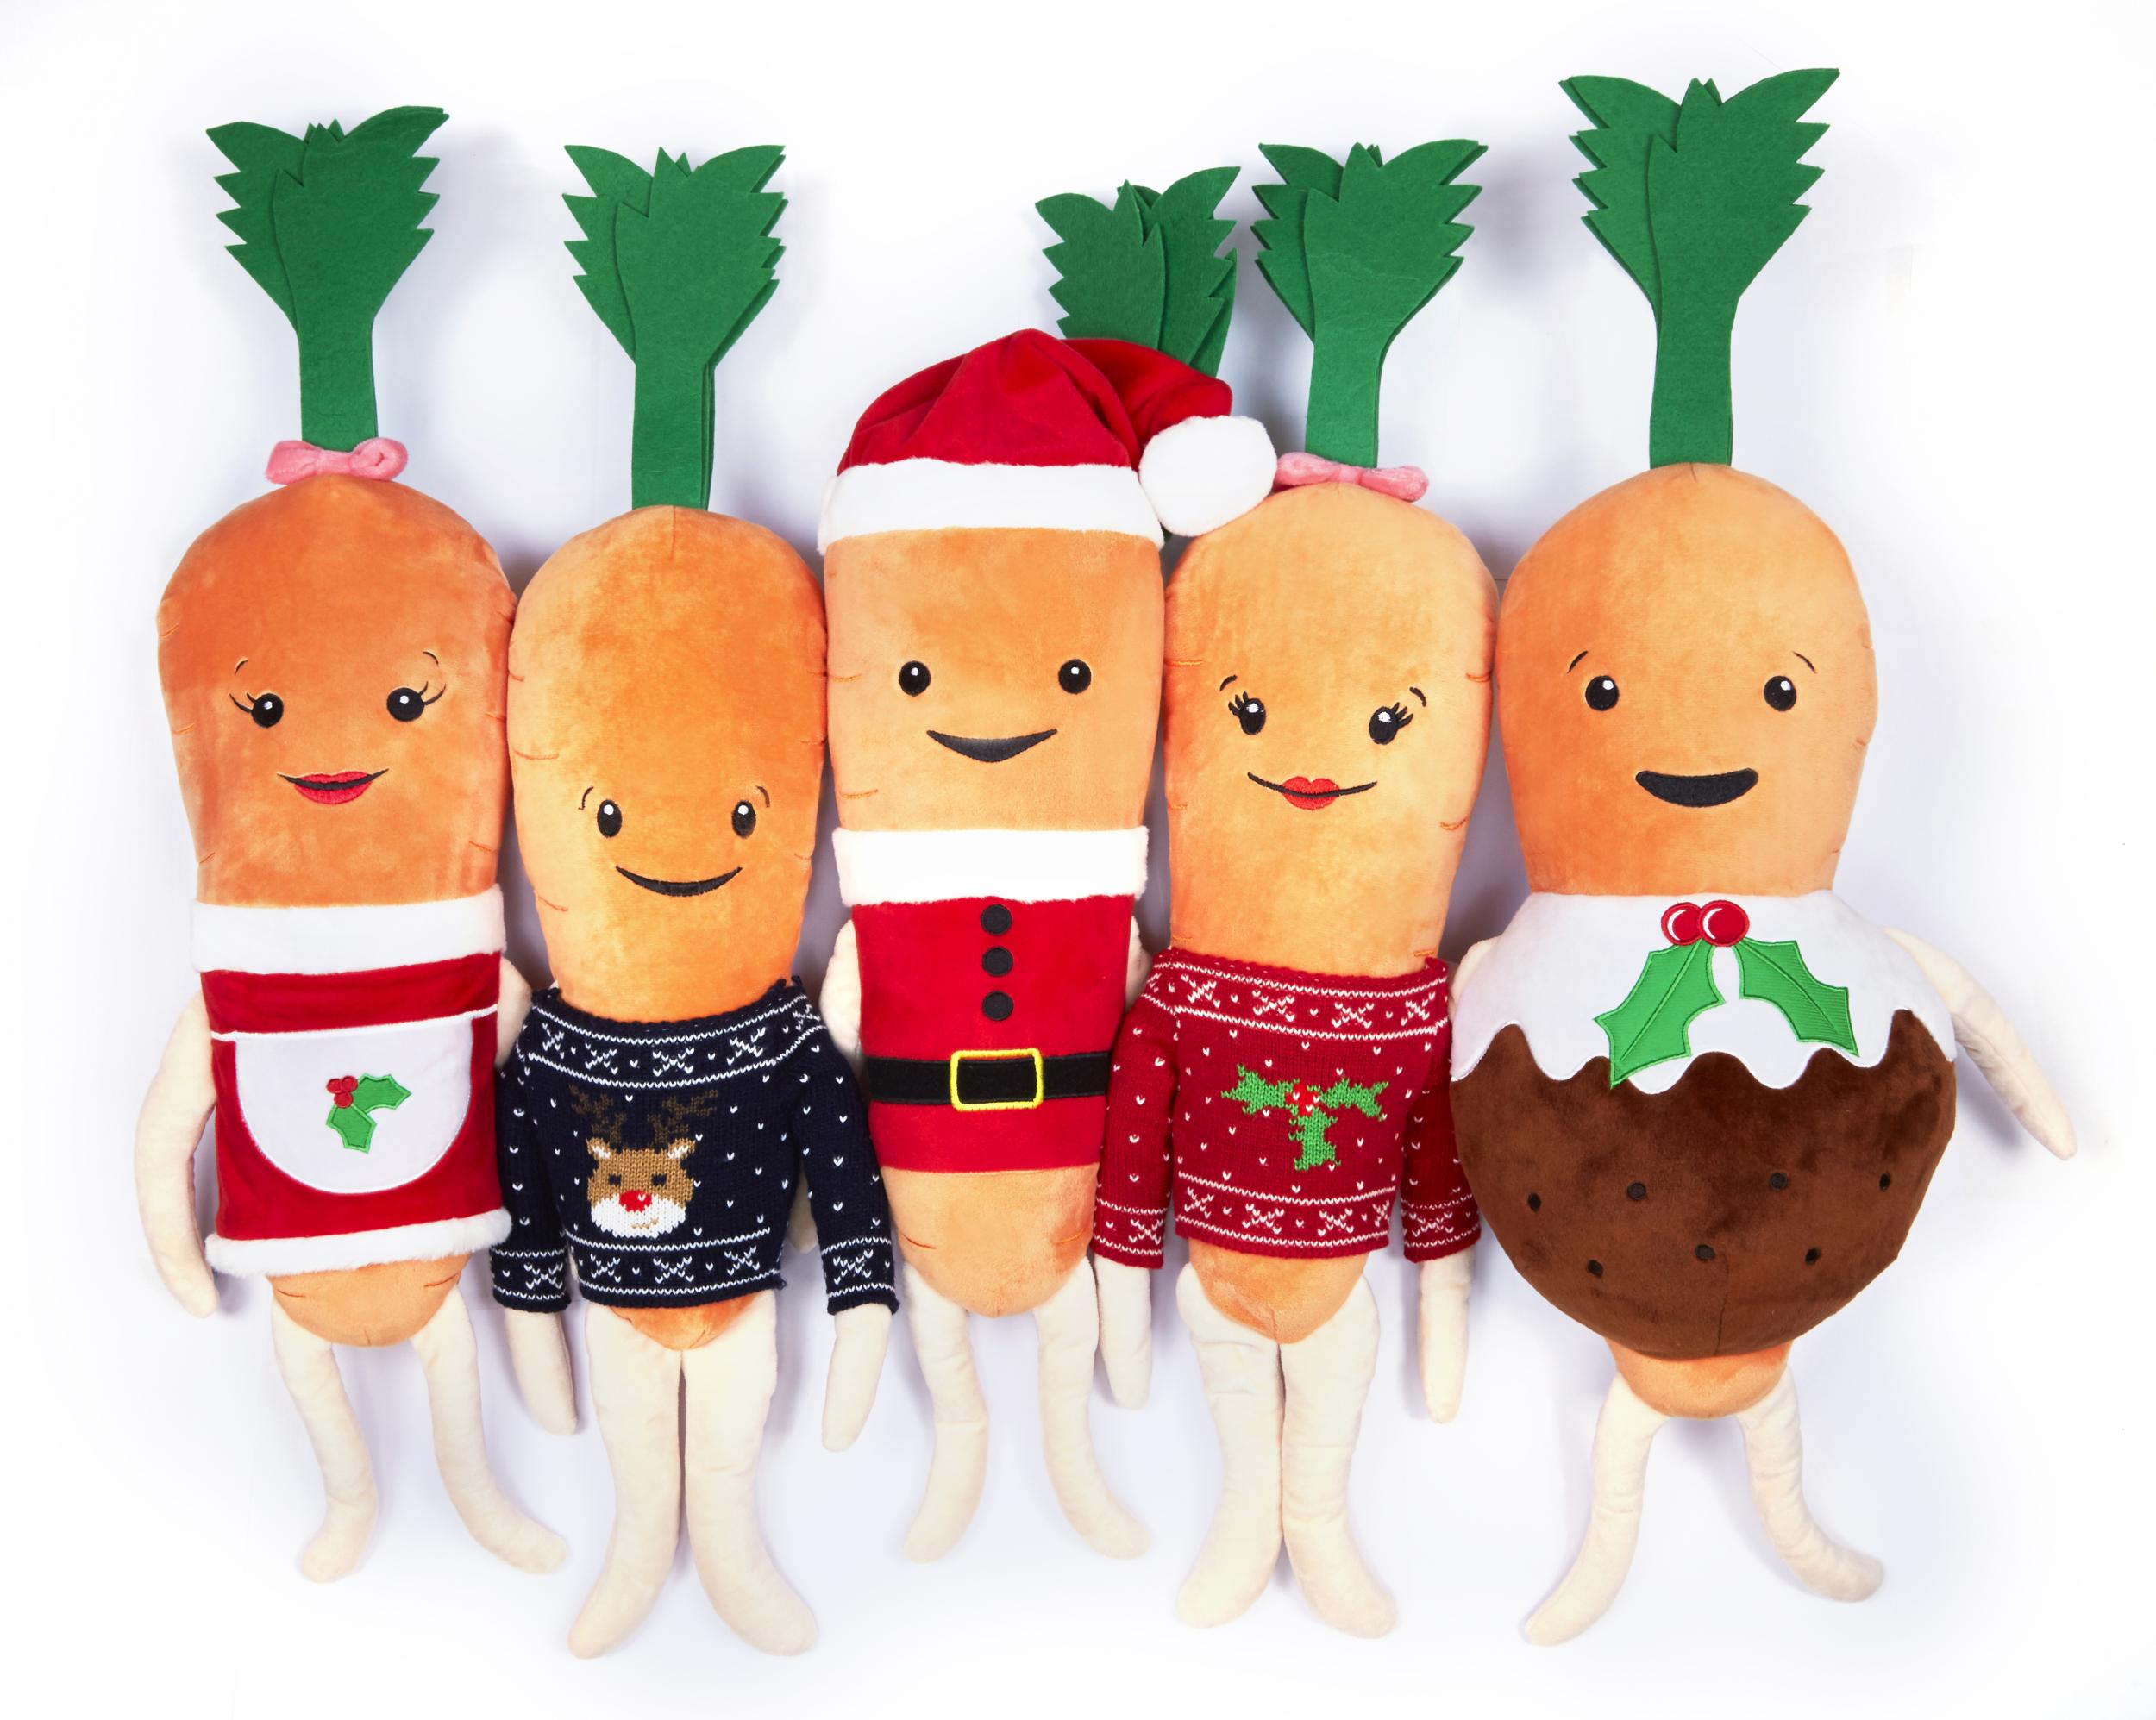 Kevin the Carrot: Who is Aldi's Christmas toy and is he